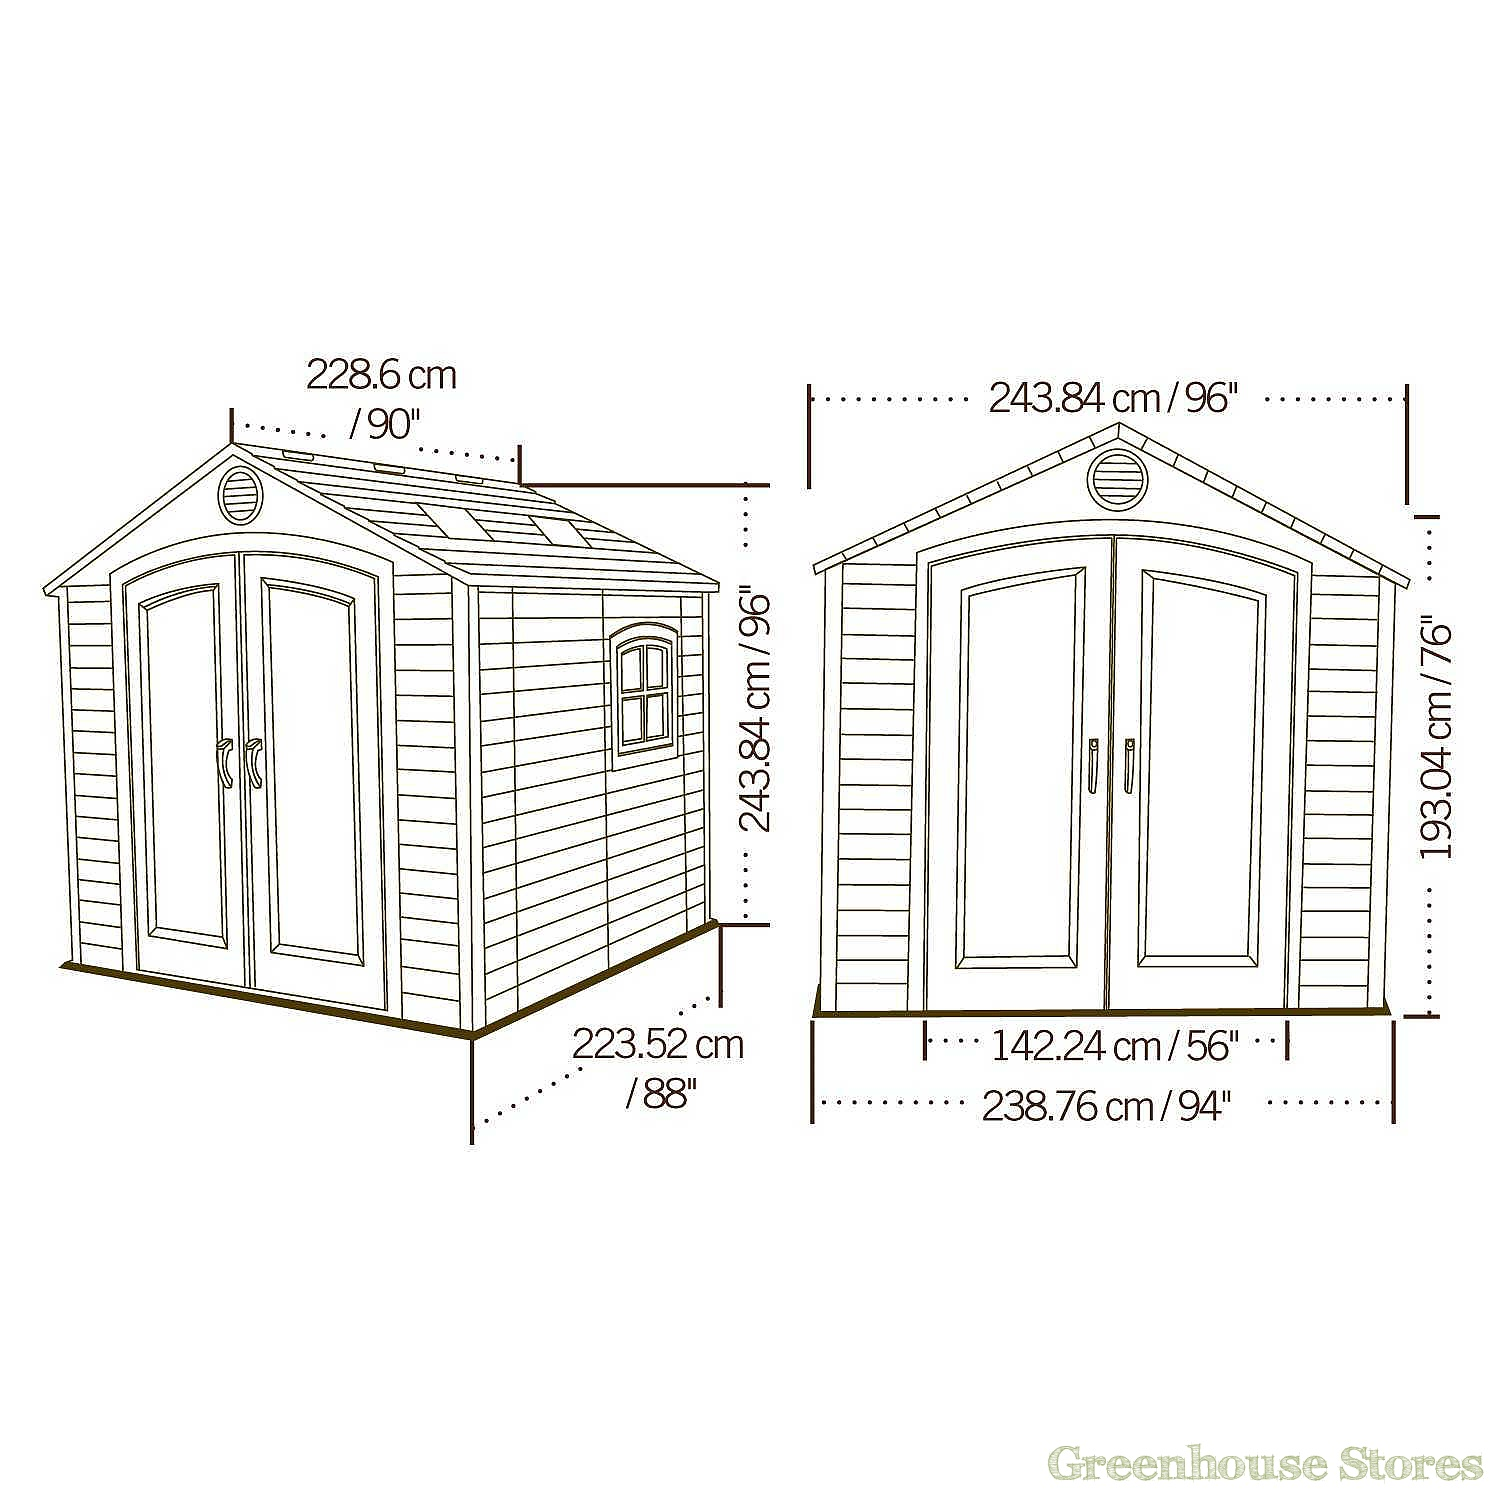 Ham 20 X 10 Garden Shed Alarms And Security Guide